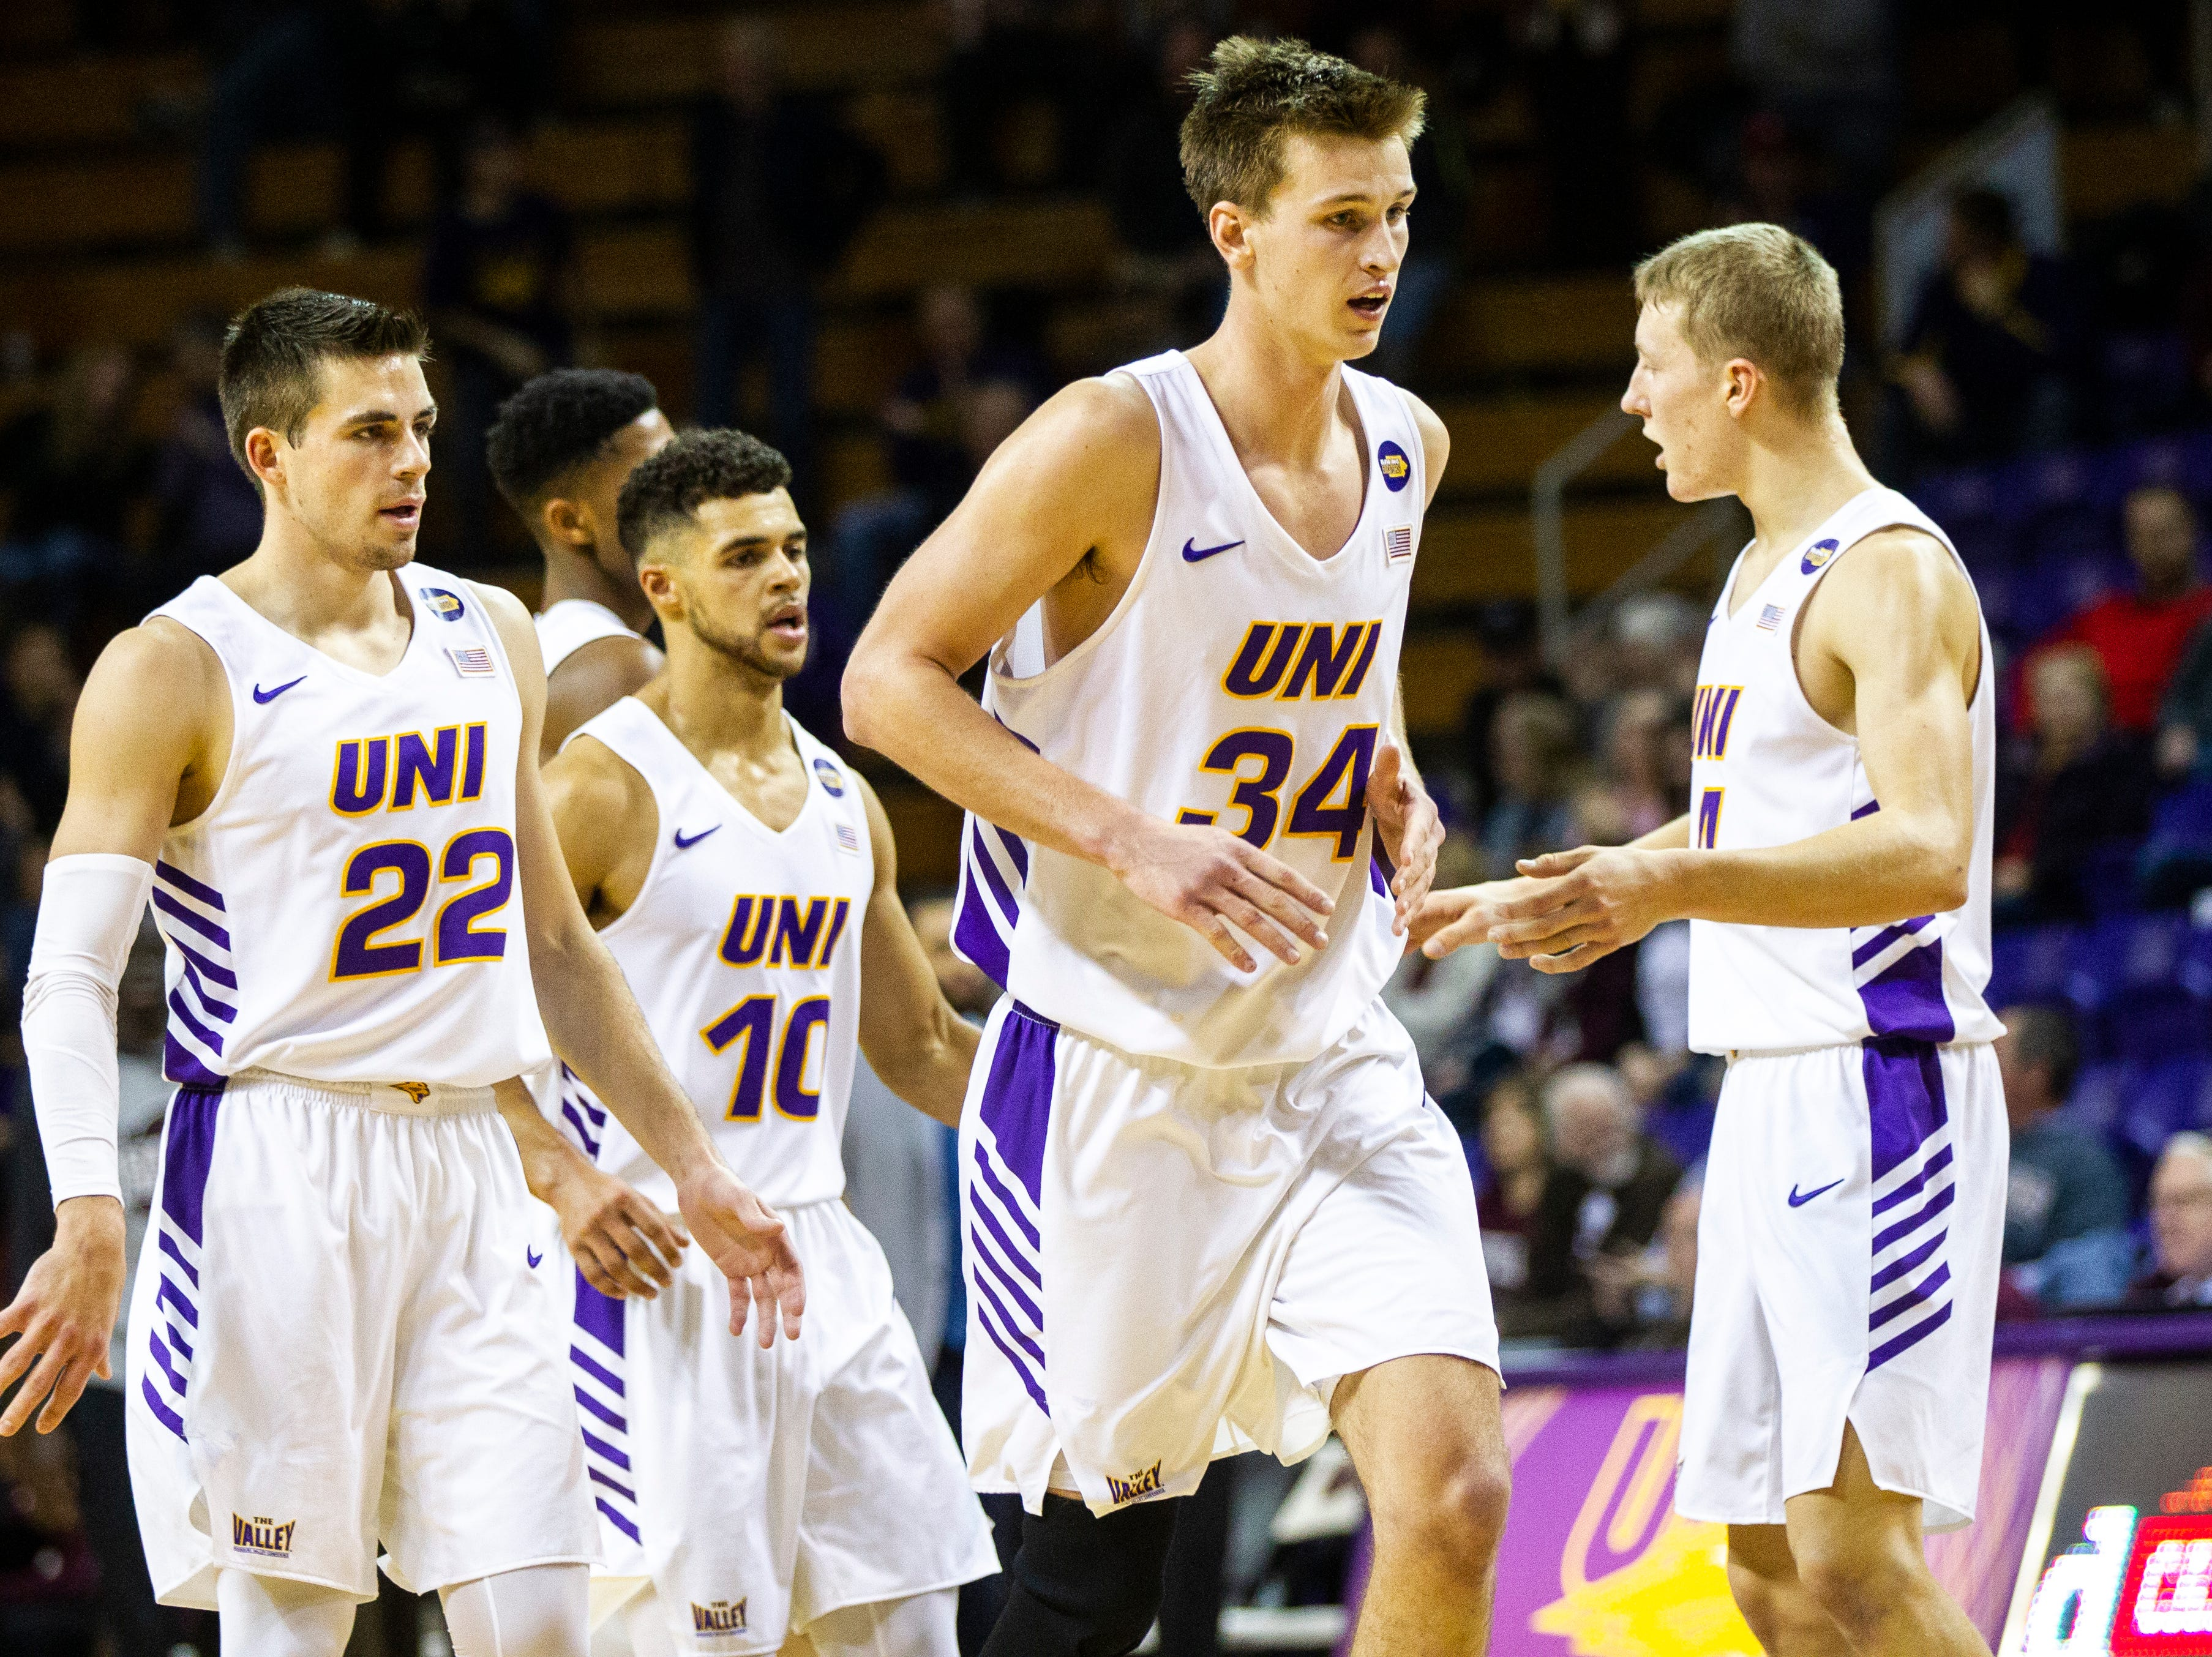 Northern Iowa forward Luke McDonnell (34) runs off the court at the end of the first half during a NCAA Missouri Valley Conference men's basketball game on Saturday, Jan. 5, 2019, at the McLeod Center in Cedar Falls, Iowa.